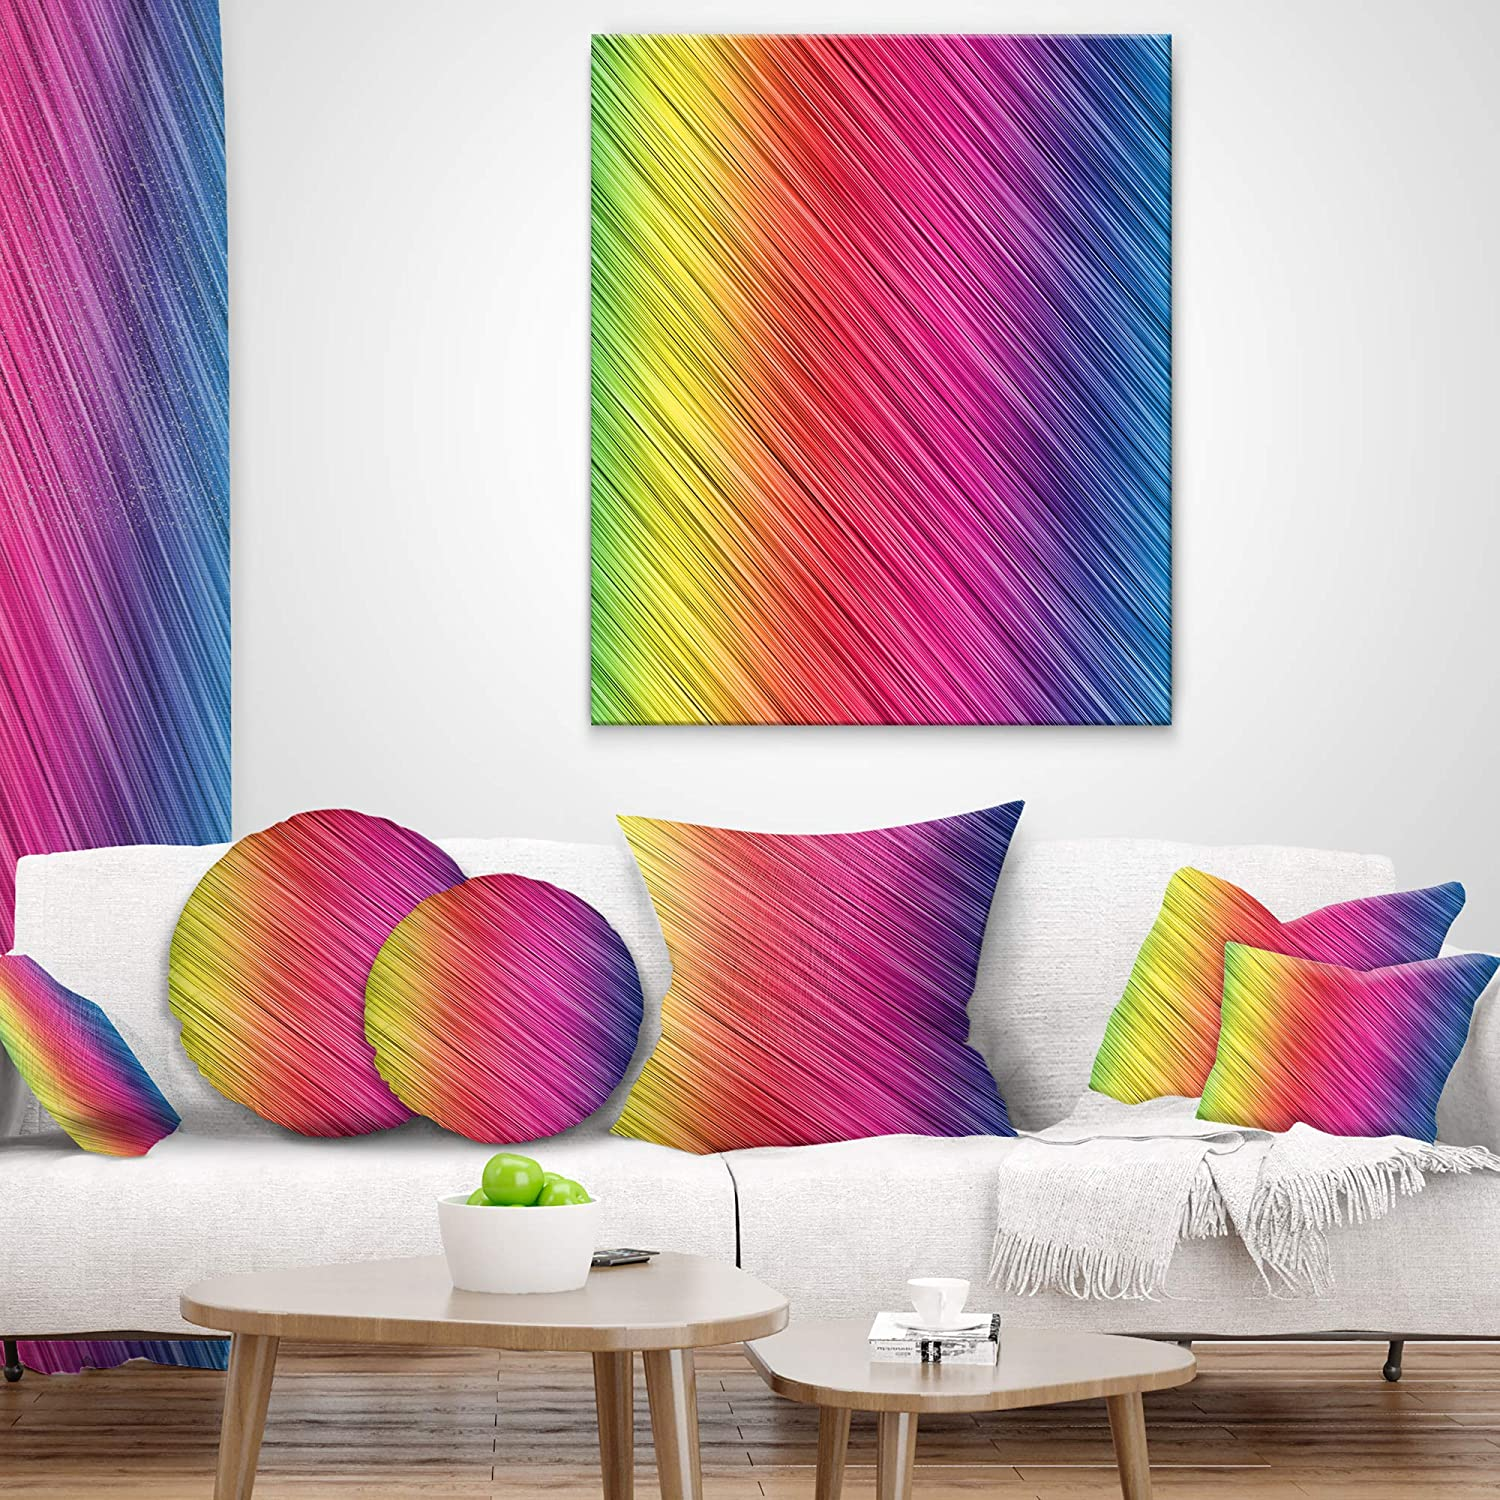 in Insert Printed On Both Side Sofa Throw Pillow 12 in x 20 in Designart CU8147-12-20 Multi Color Neon Glowing Lines Abstract Lumbar Cushion Cover for Living Room